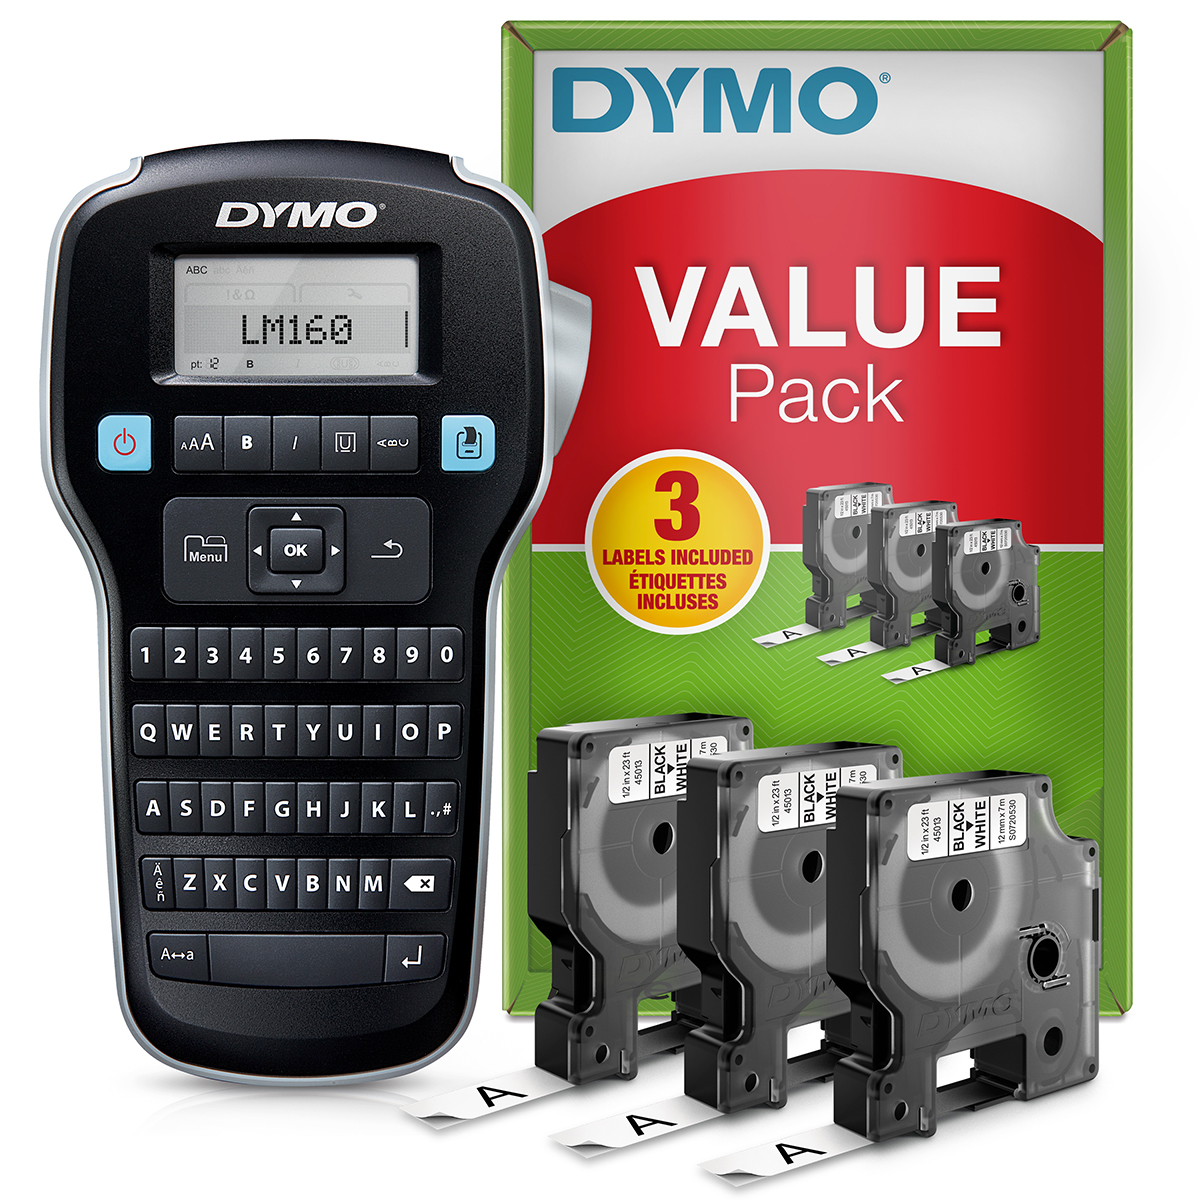 Dymo Labelmanager 160 Label Maker Value Pack